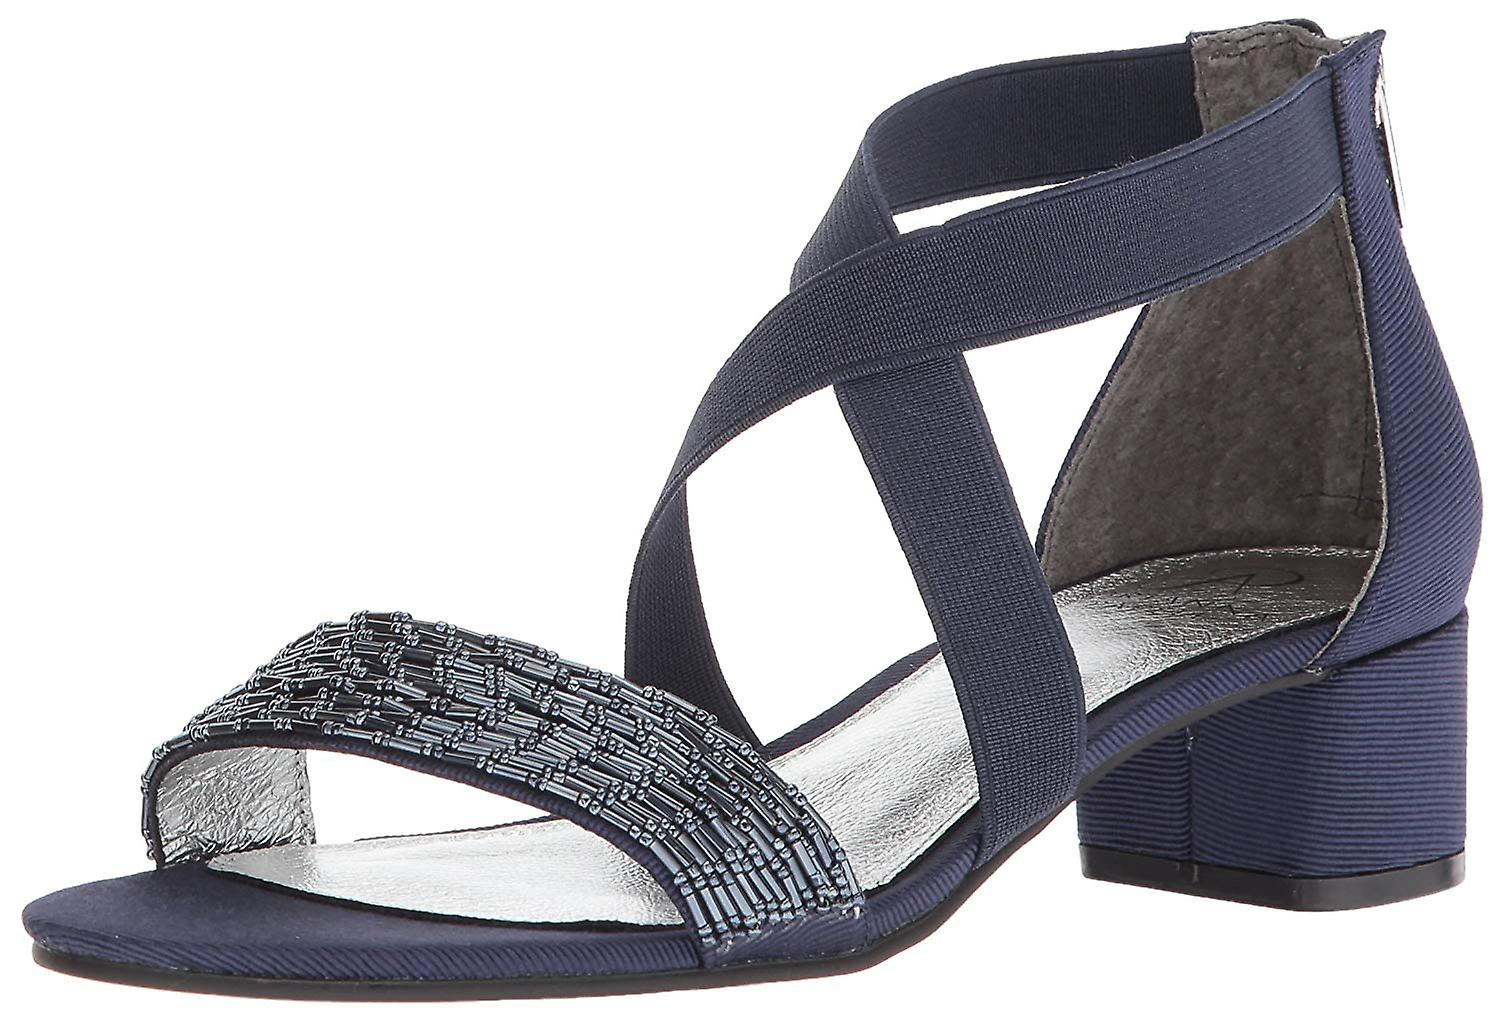 Adrianna Papell Womens TEAGAN Open Toe Casual Ankle Strap Sandals cGZDE